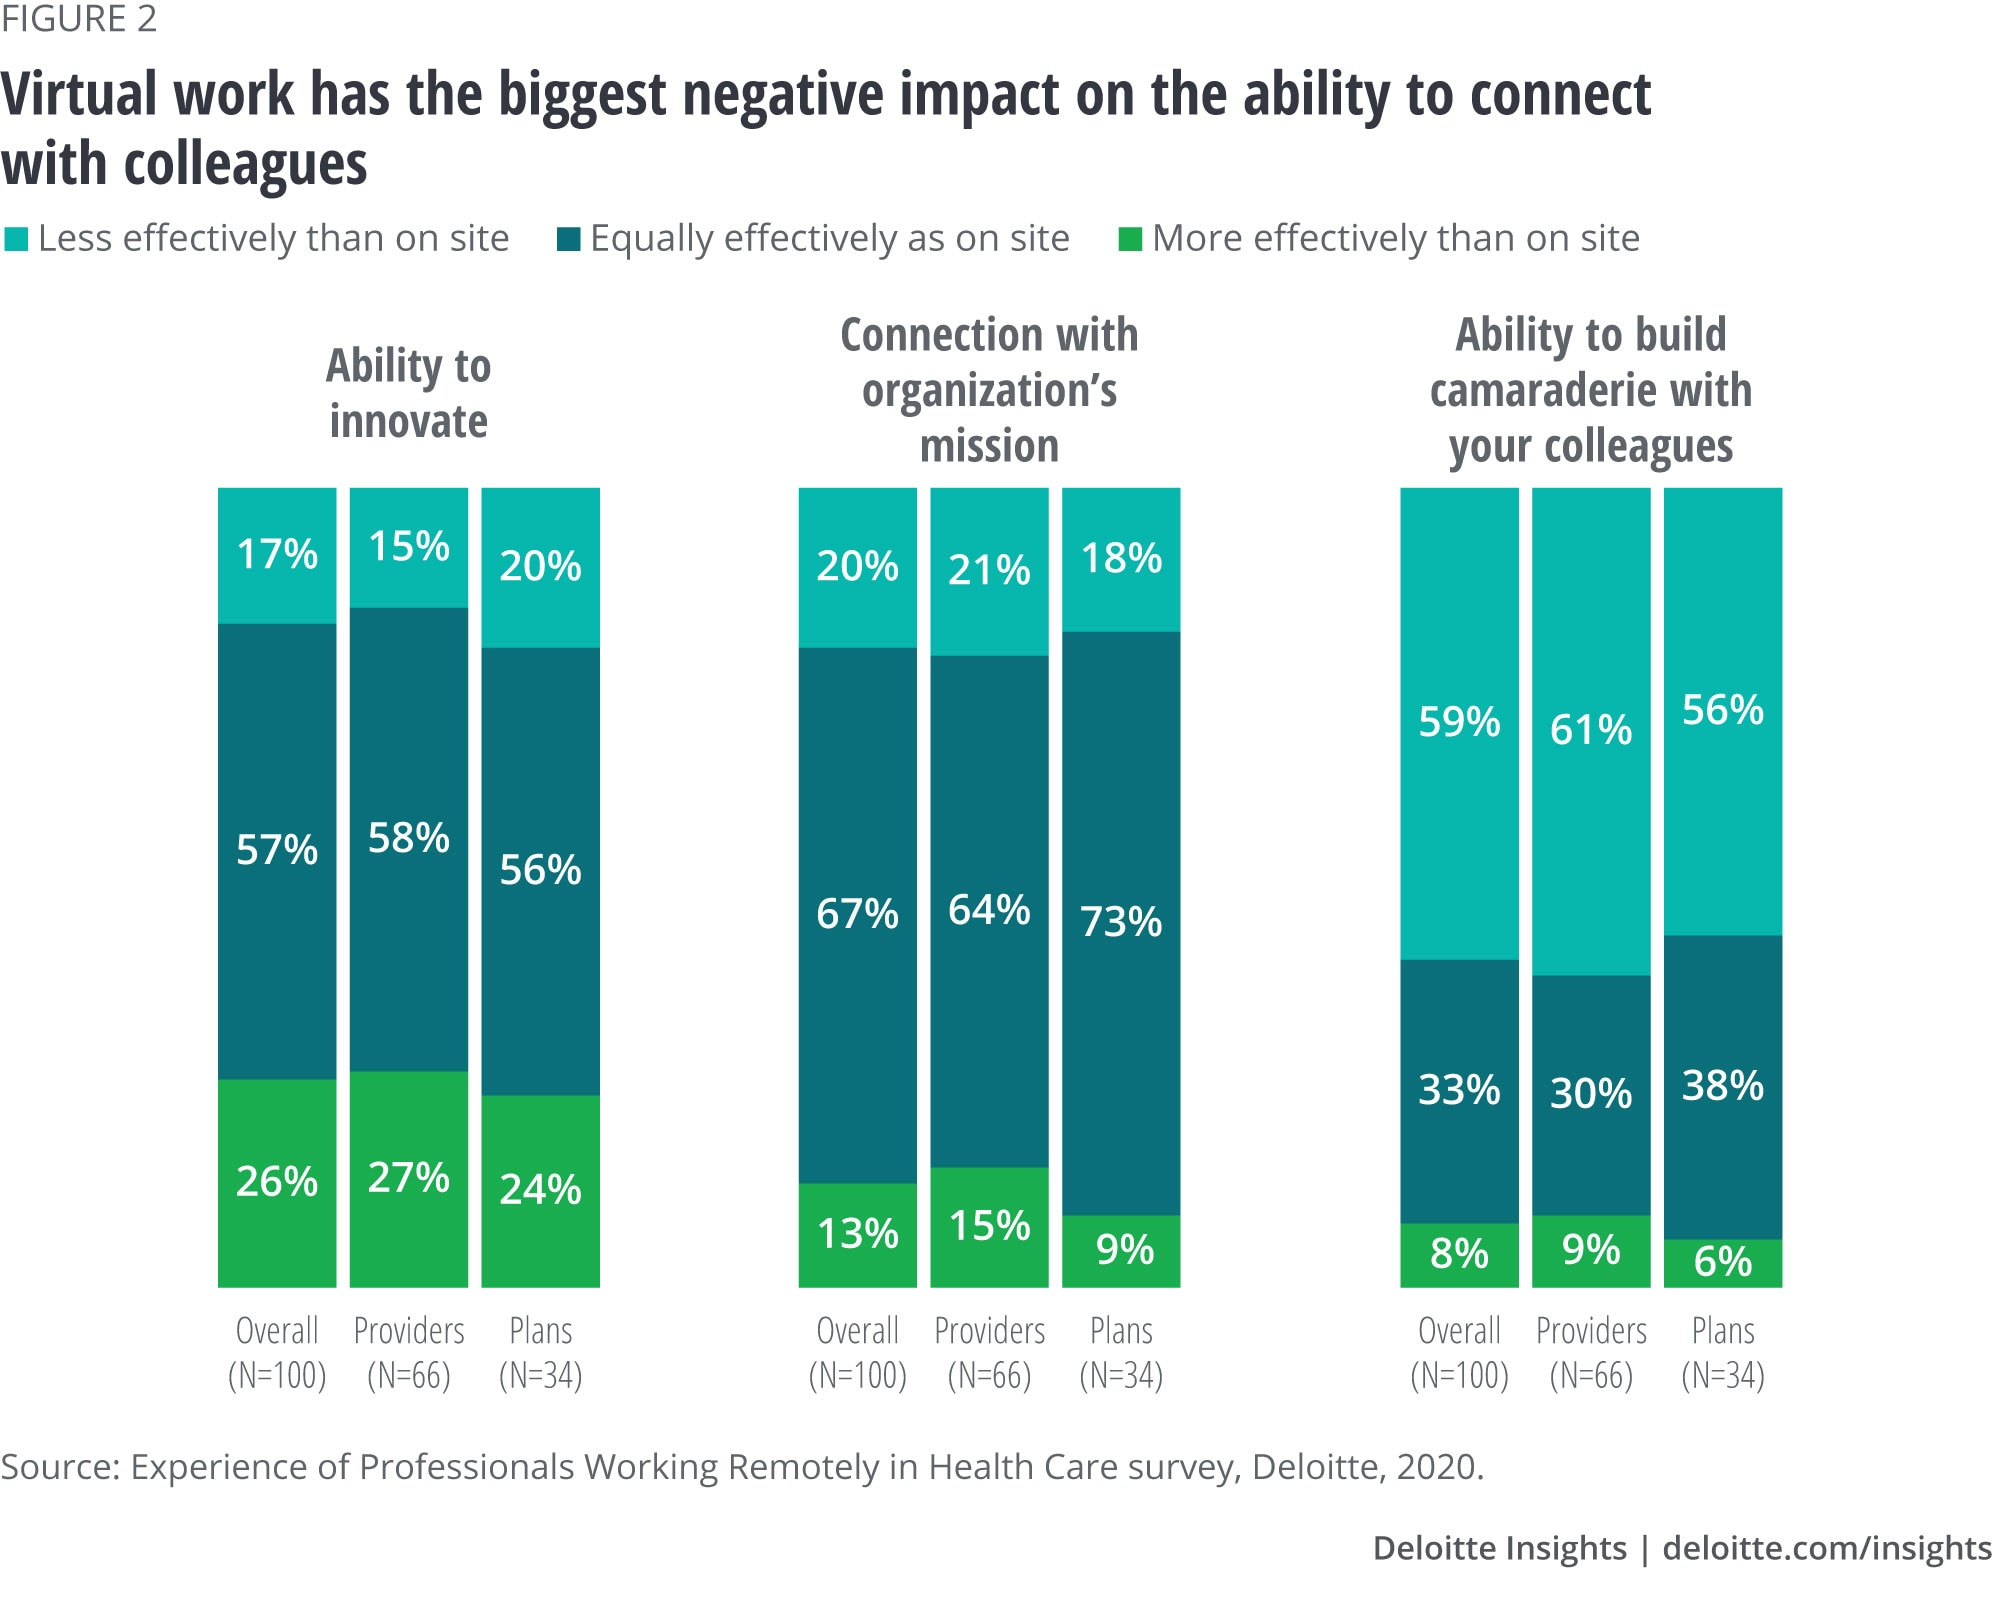 Virtual work has the biggest negative impact on the ability to connect with colleagues